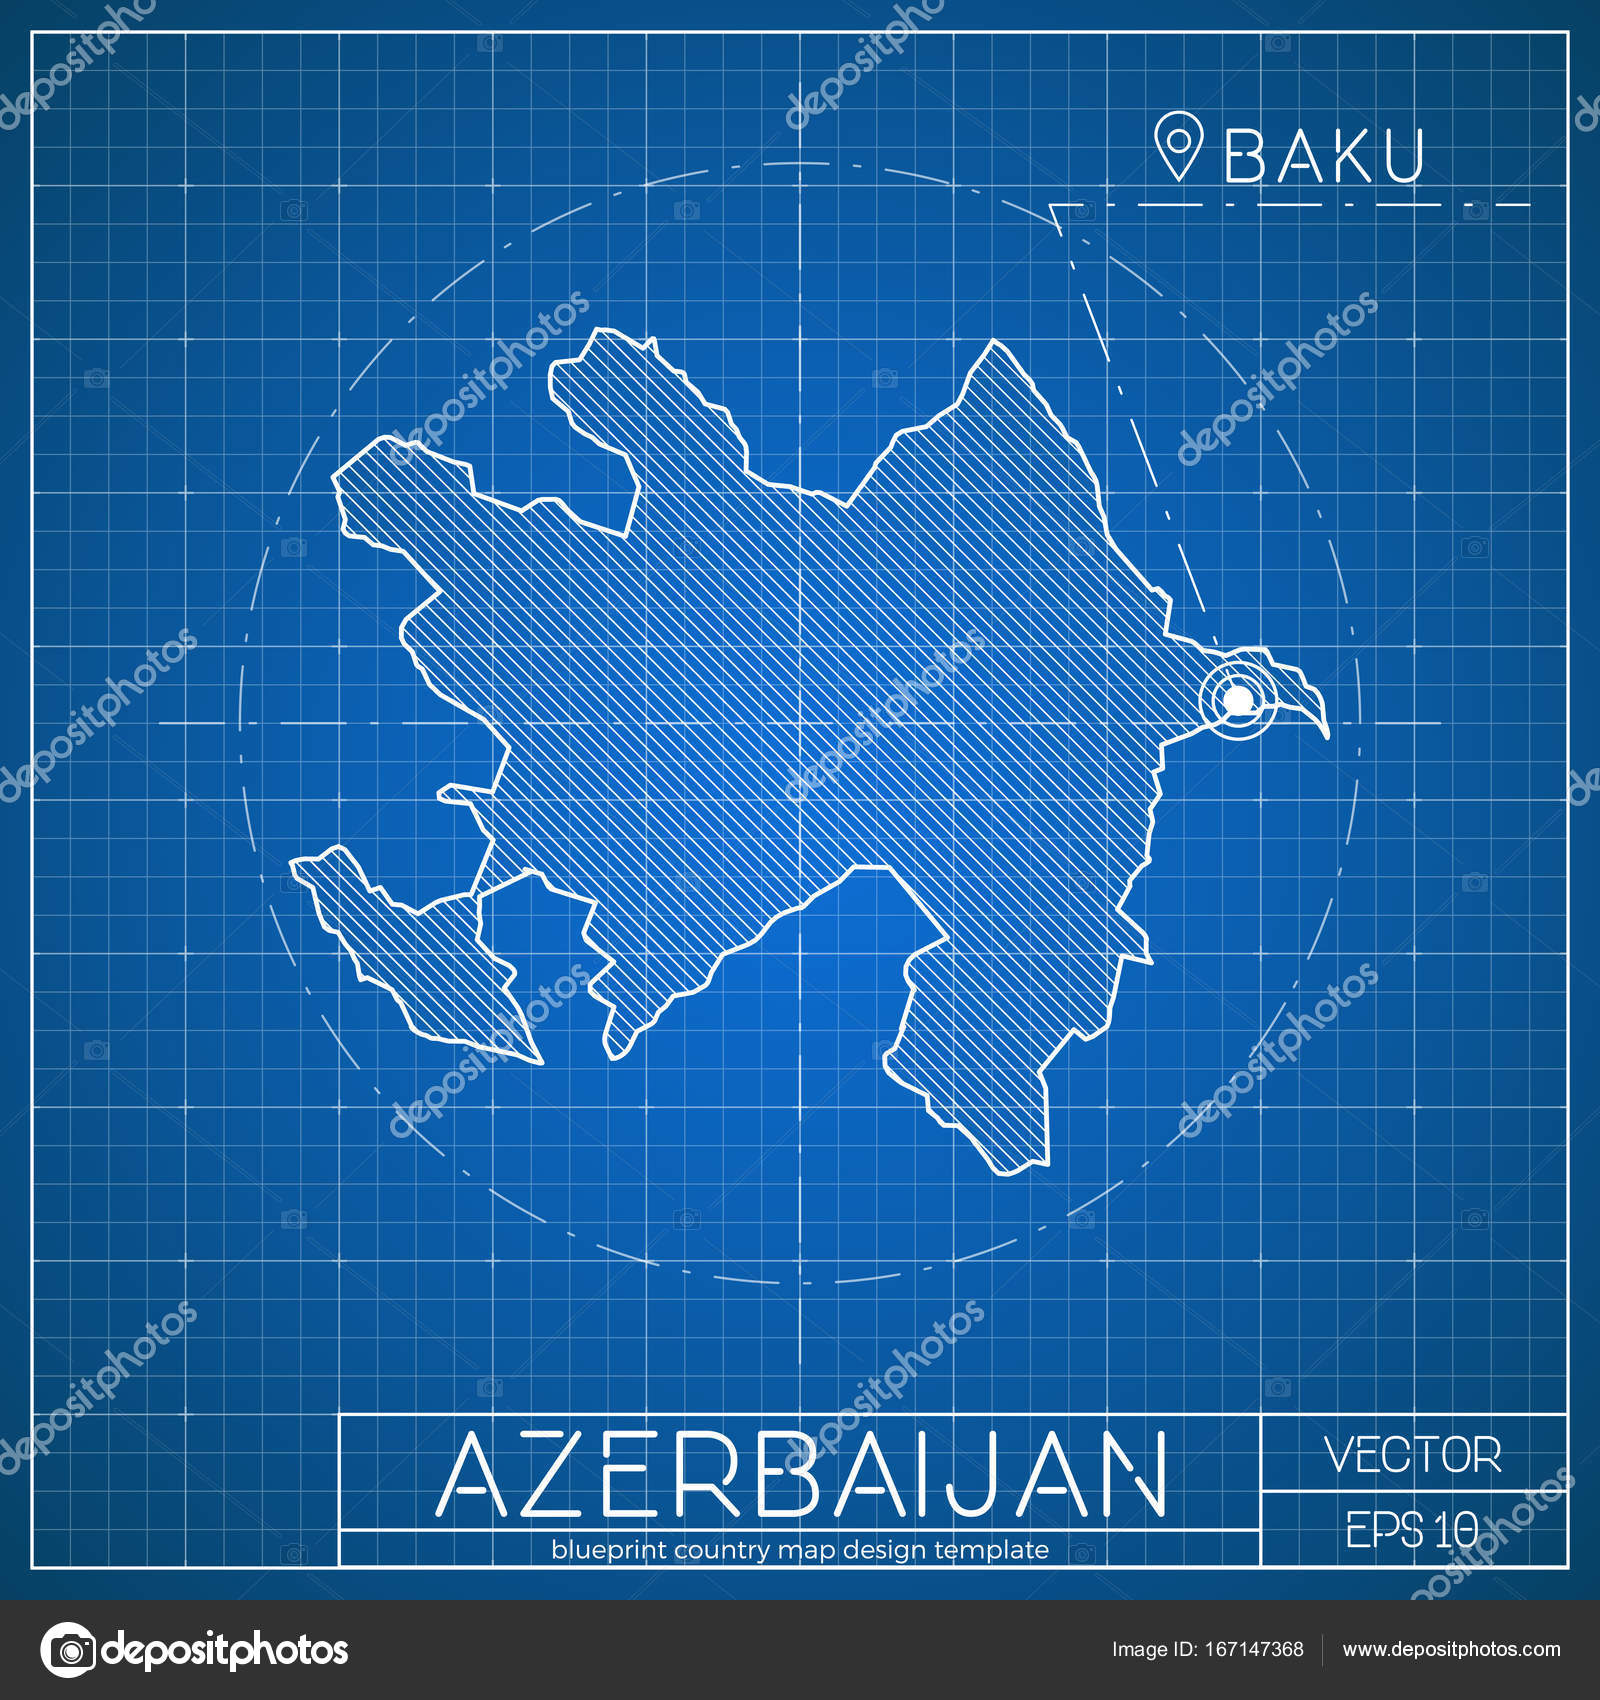 azerbaijan blueprint map template with capital city baku marked on